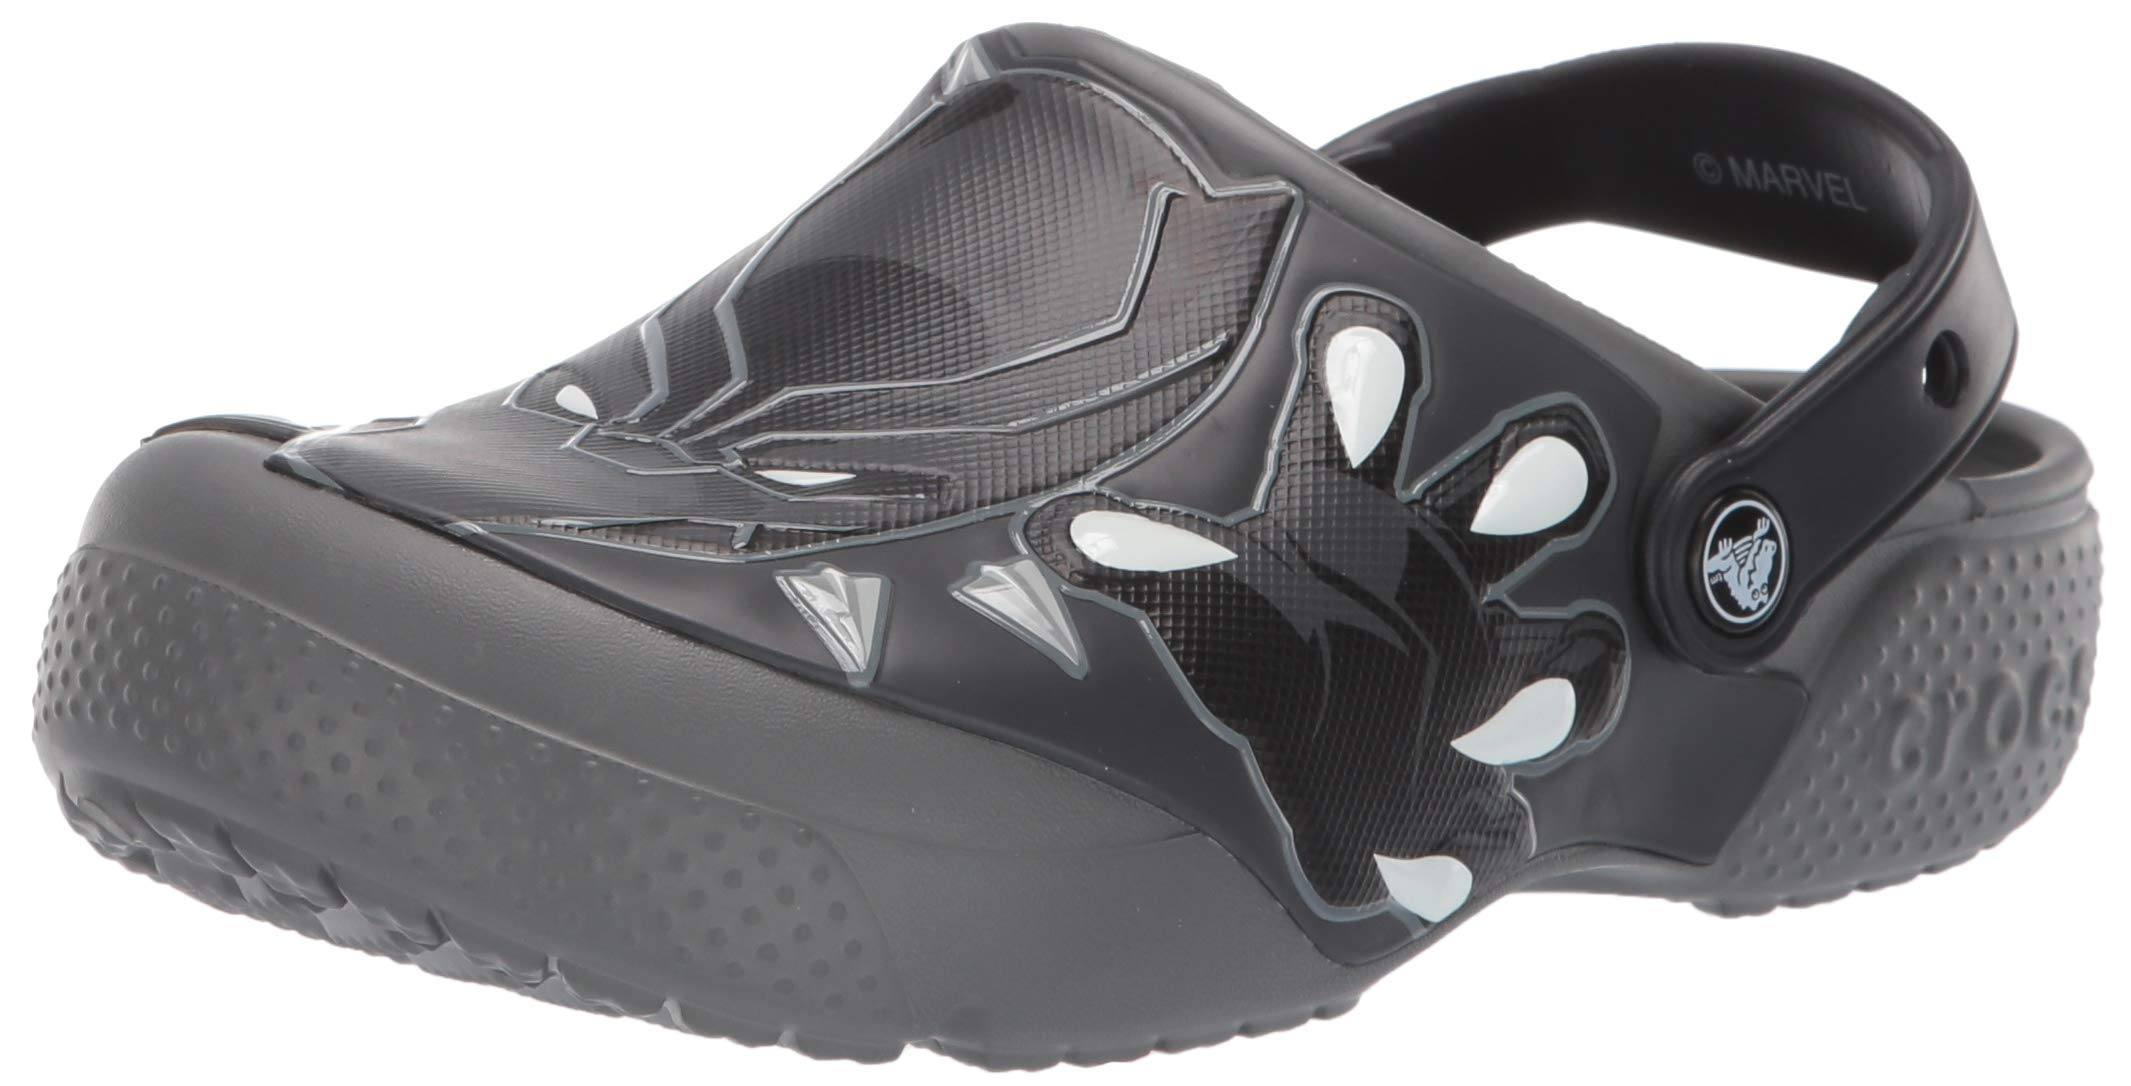 Crocs Unisex Boys and Girls Black Panther Clog, Slate Grey 1 M US Little Kid